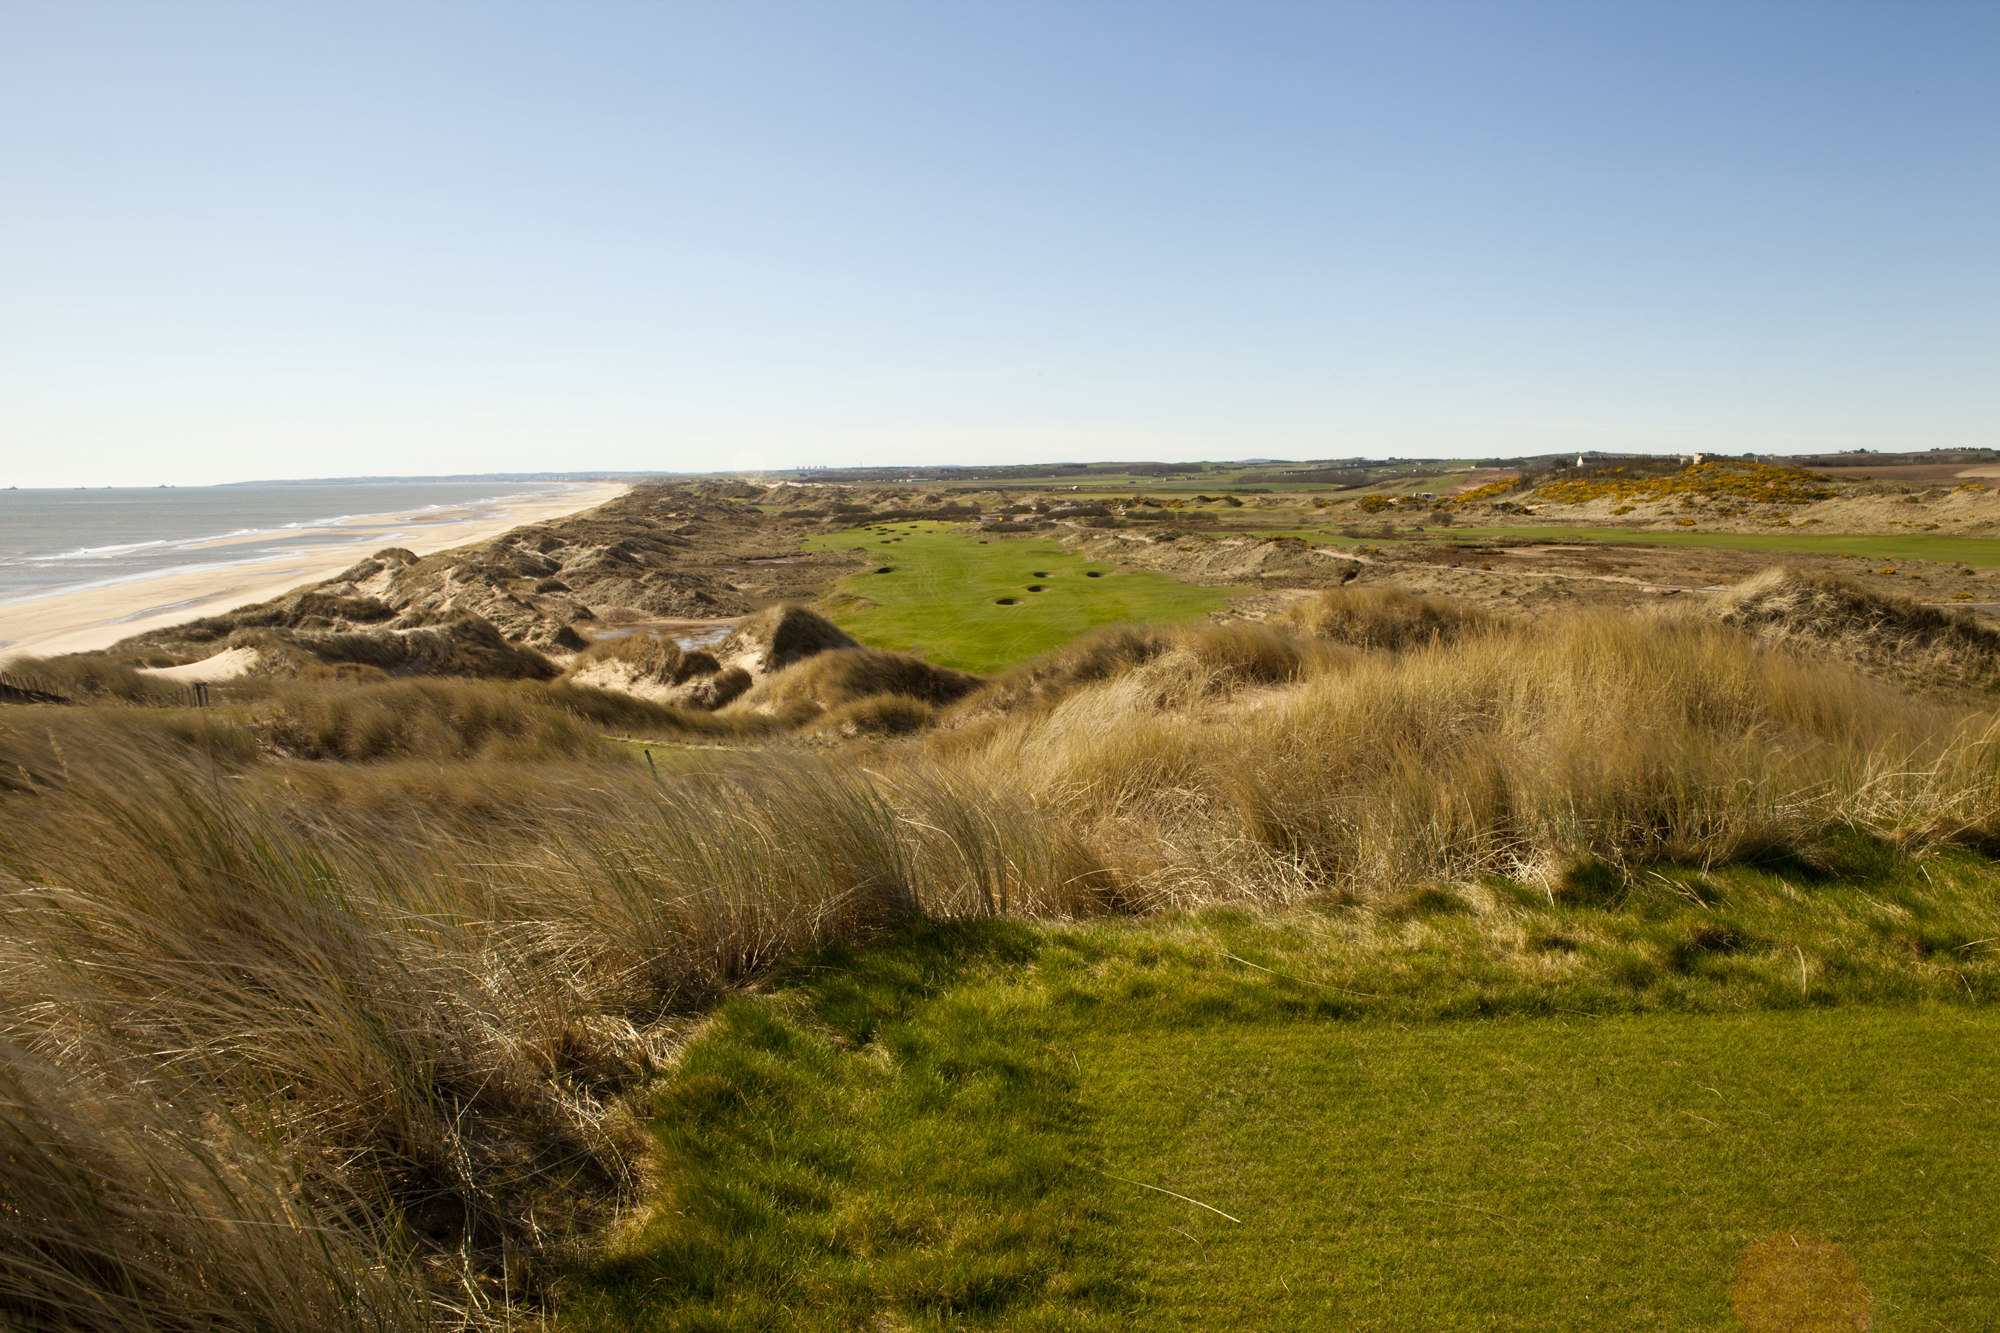 Trump International-Aberdeen – Global Golf Links